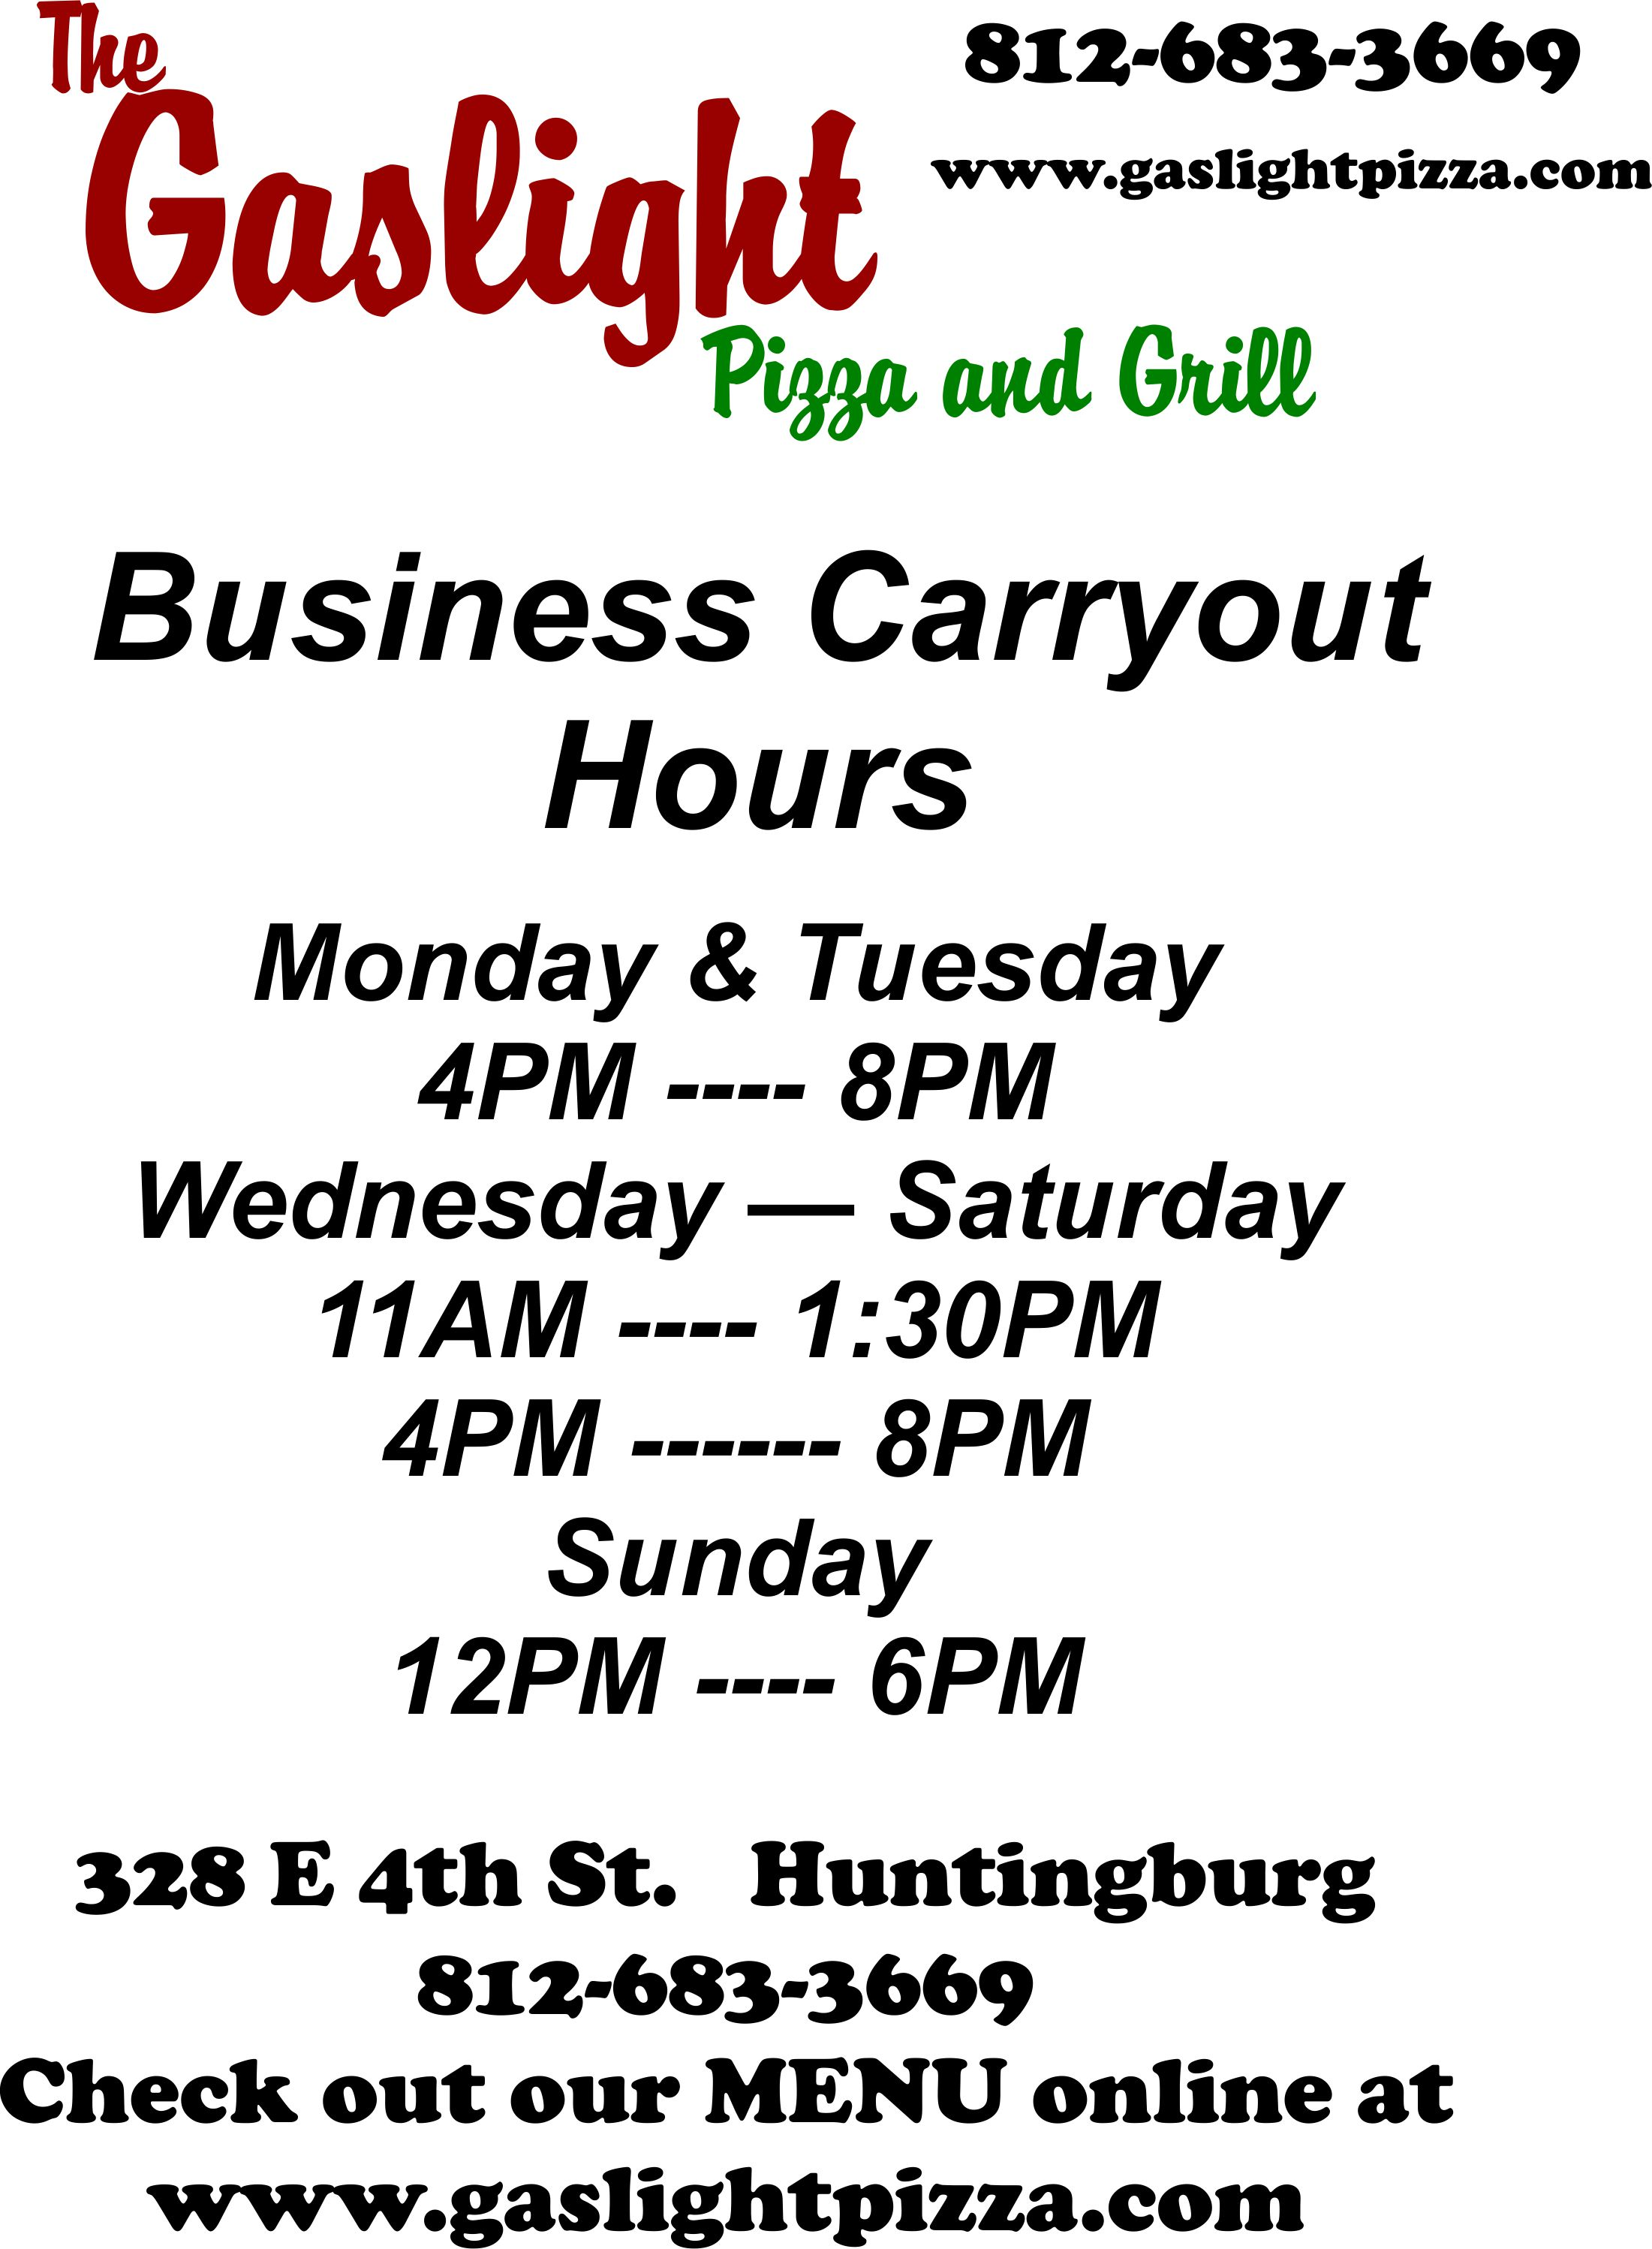 Business Carryout Hours Monday and Tuesday: 4 pm to 8 pm Wednesday through Friday 11 am to 1:30 pm and 4 pm to 9 pm Saturday 11 am to 9 pm and sunday from 12 pm to 6 pm